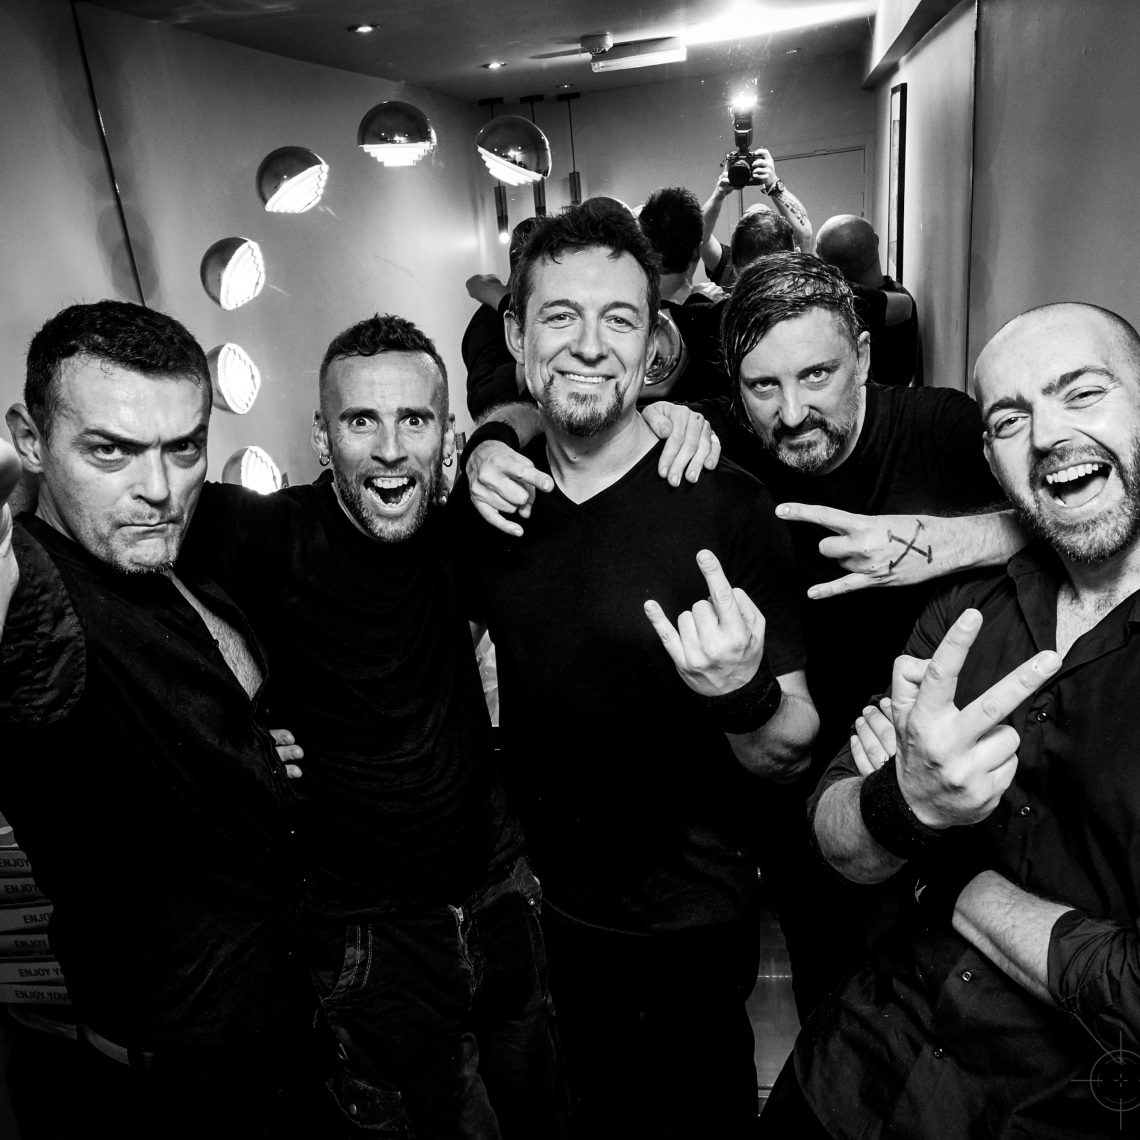 Pitchshifter Re-Release Their 'Un- United Kingdom' Single on January 31st, to Commiserate Brexit, Joined by Co-conspirators from: The Wildhearts, Fear Factory, 'A', Sikth, Hundred Reasons and Earthtone 9!